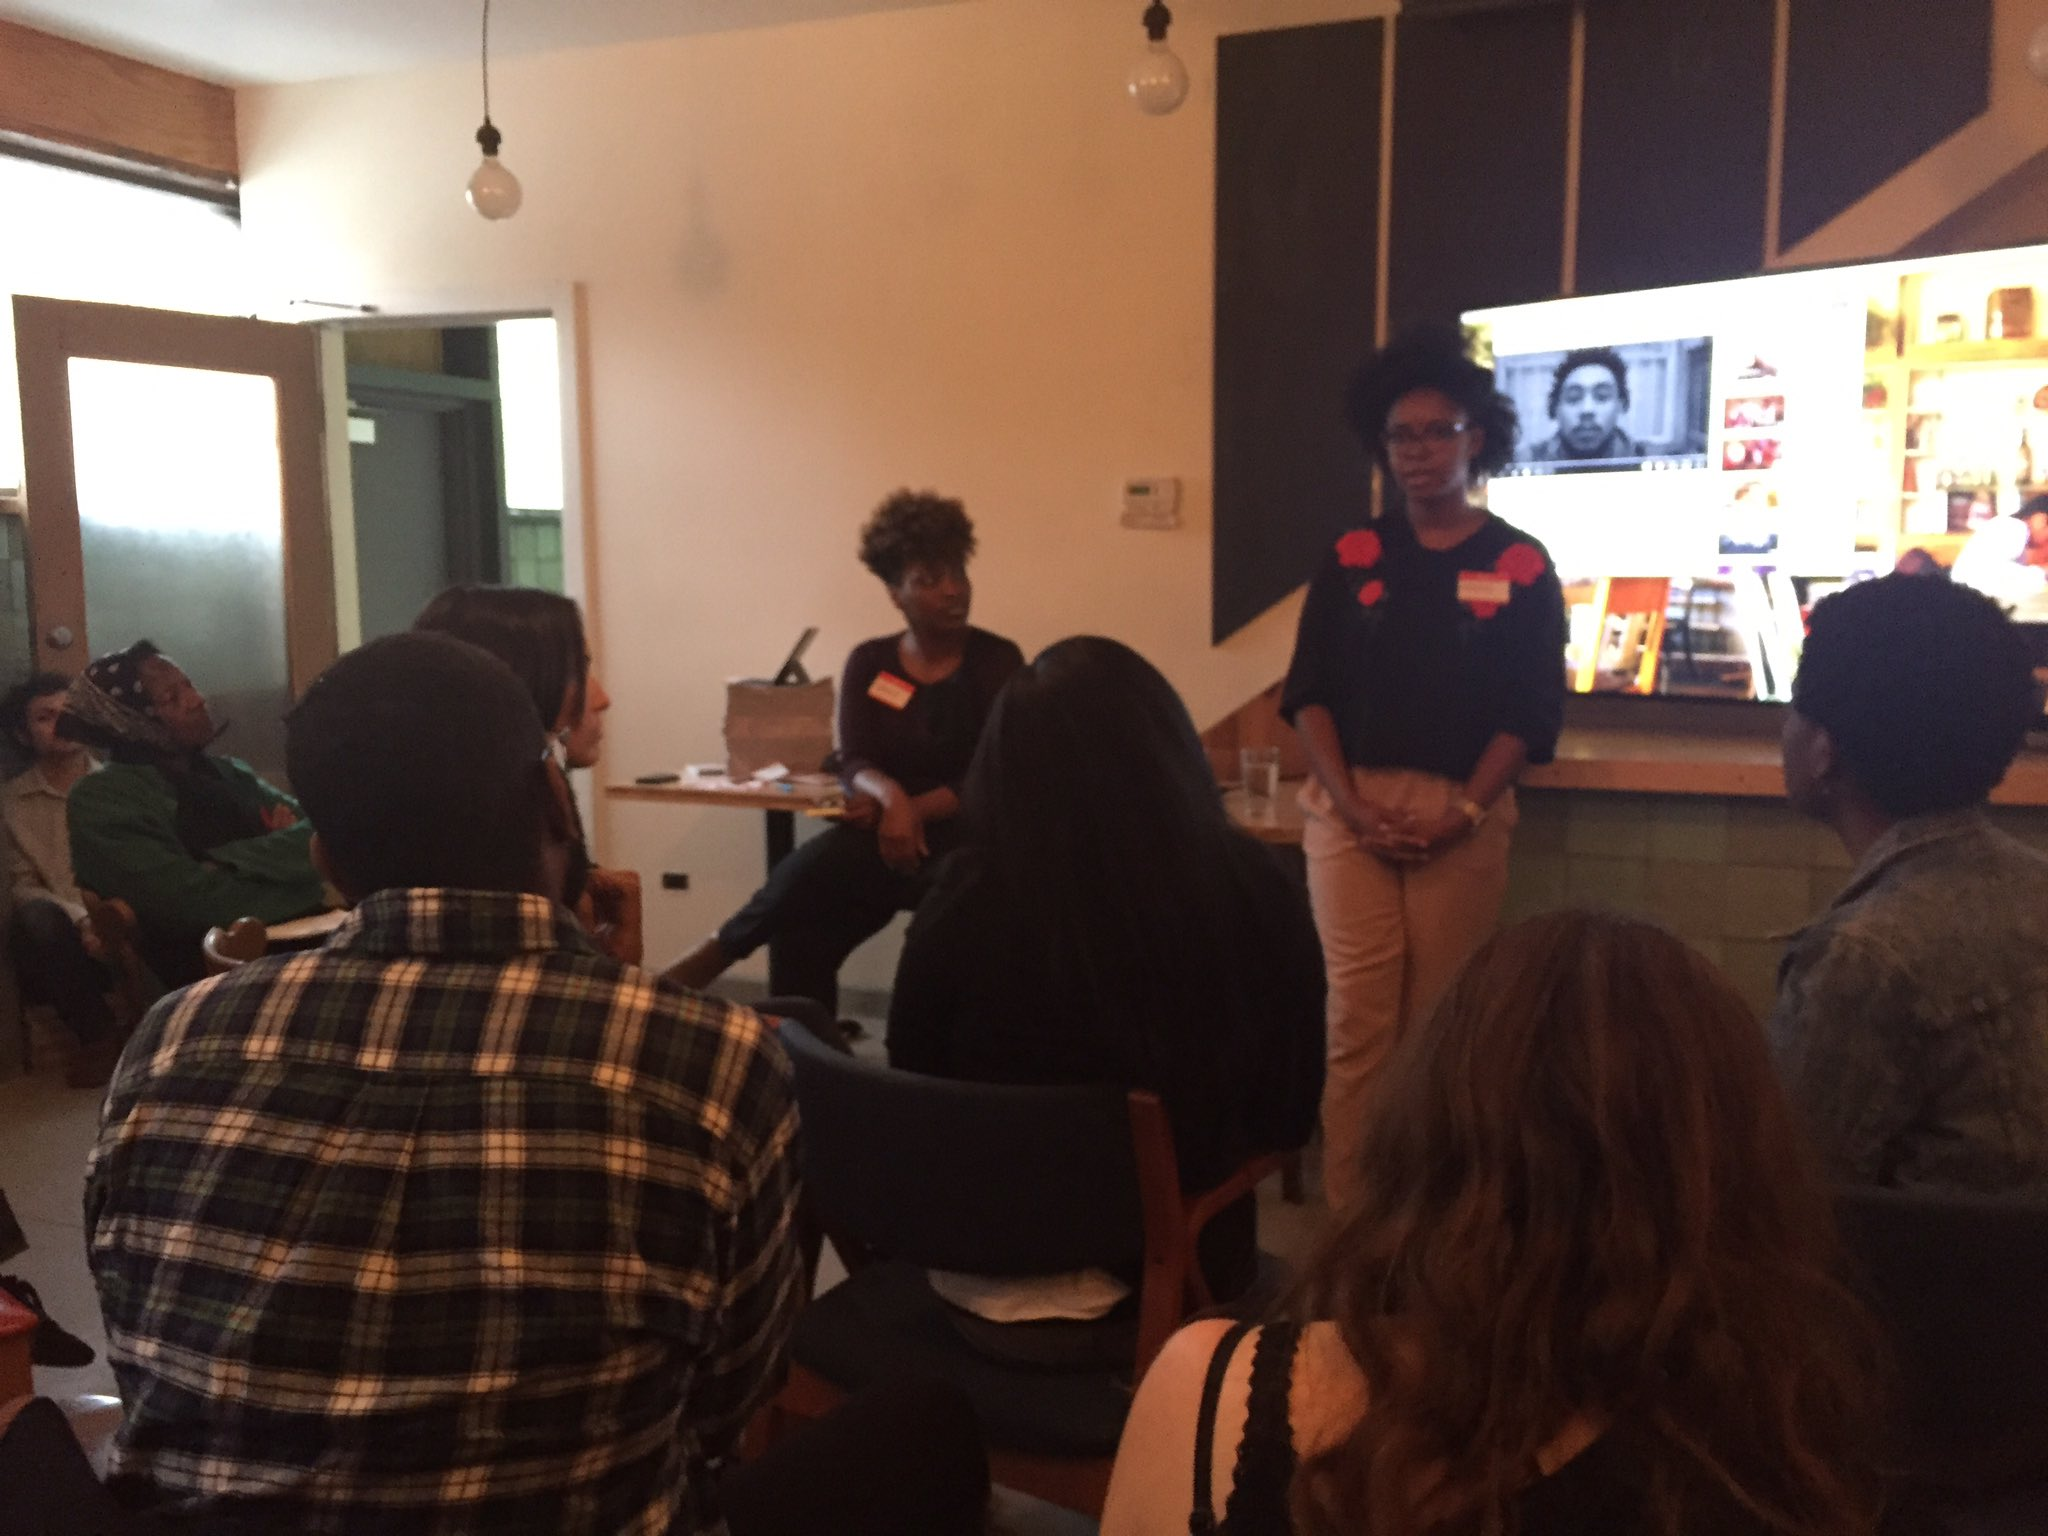 .@Waldens_Block @MorganEliseJ lead talk on how Chicago media covers violence, compared to @thetriibe mini-doc #publicnewsroom #healchicago https://t.co/frZCVUfAcg